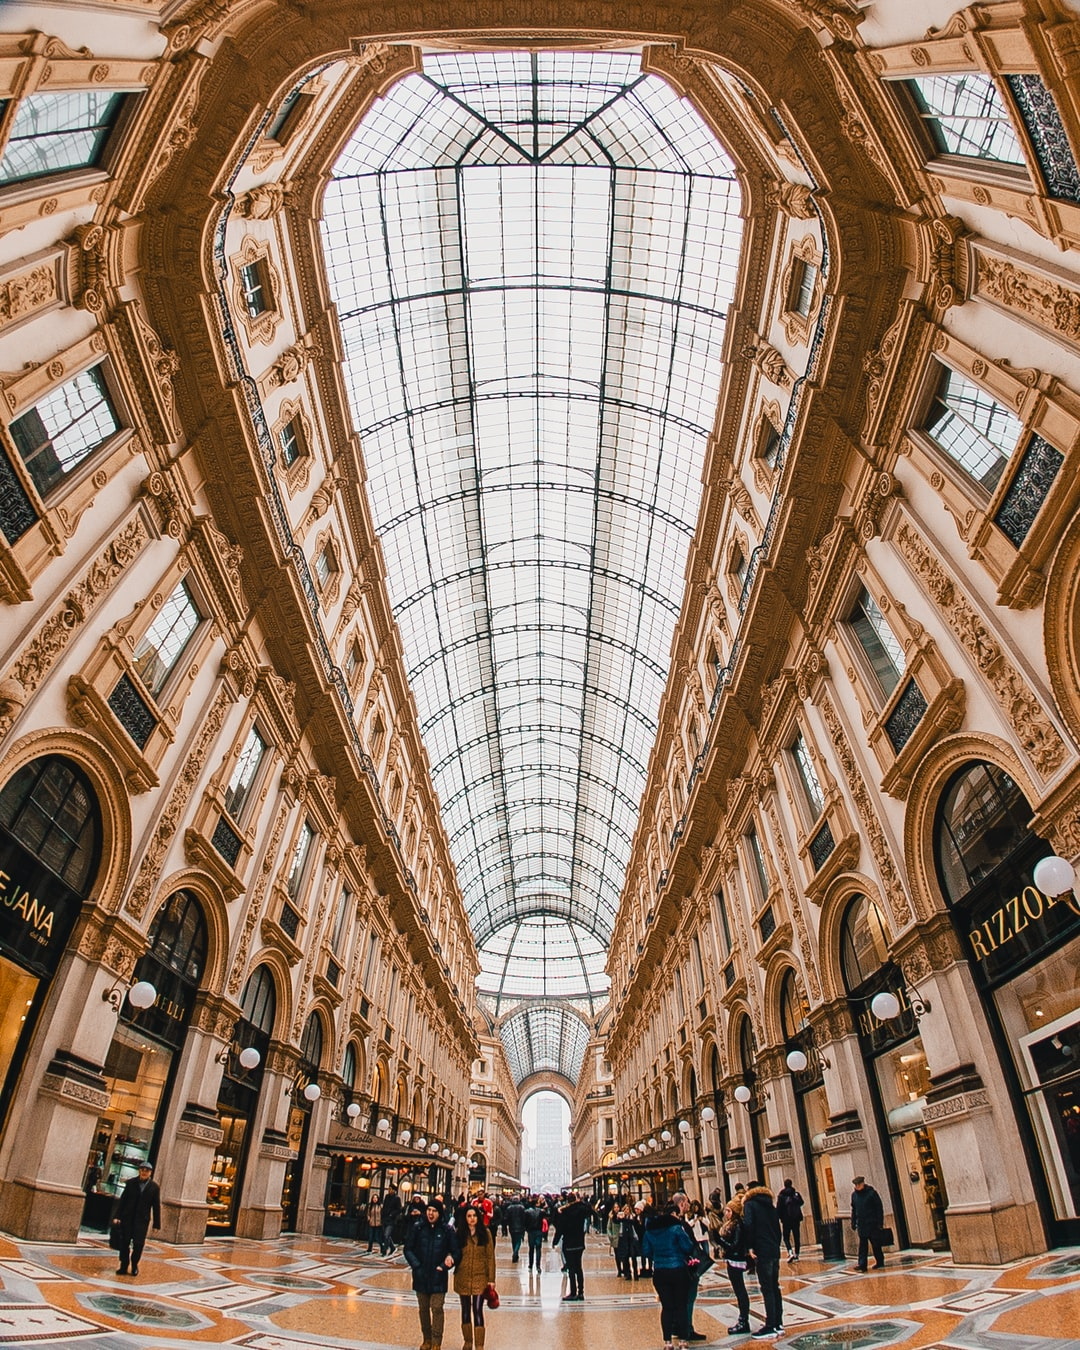 I had a about 30 minutes to explore Milan and had seen pictures of this place in the past.  I knew that the entire place was massive, so I packed up the 8mm and decided to try shooting ultra wide to capture all of it's beauty.